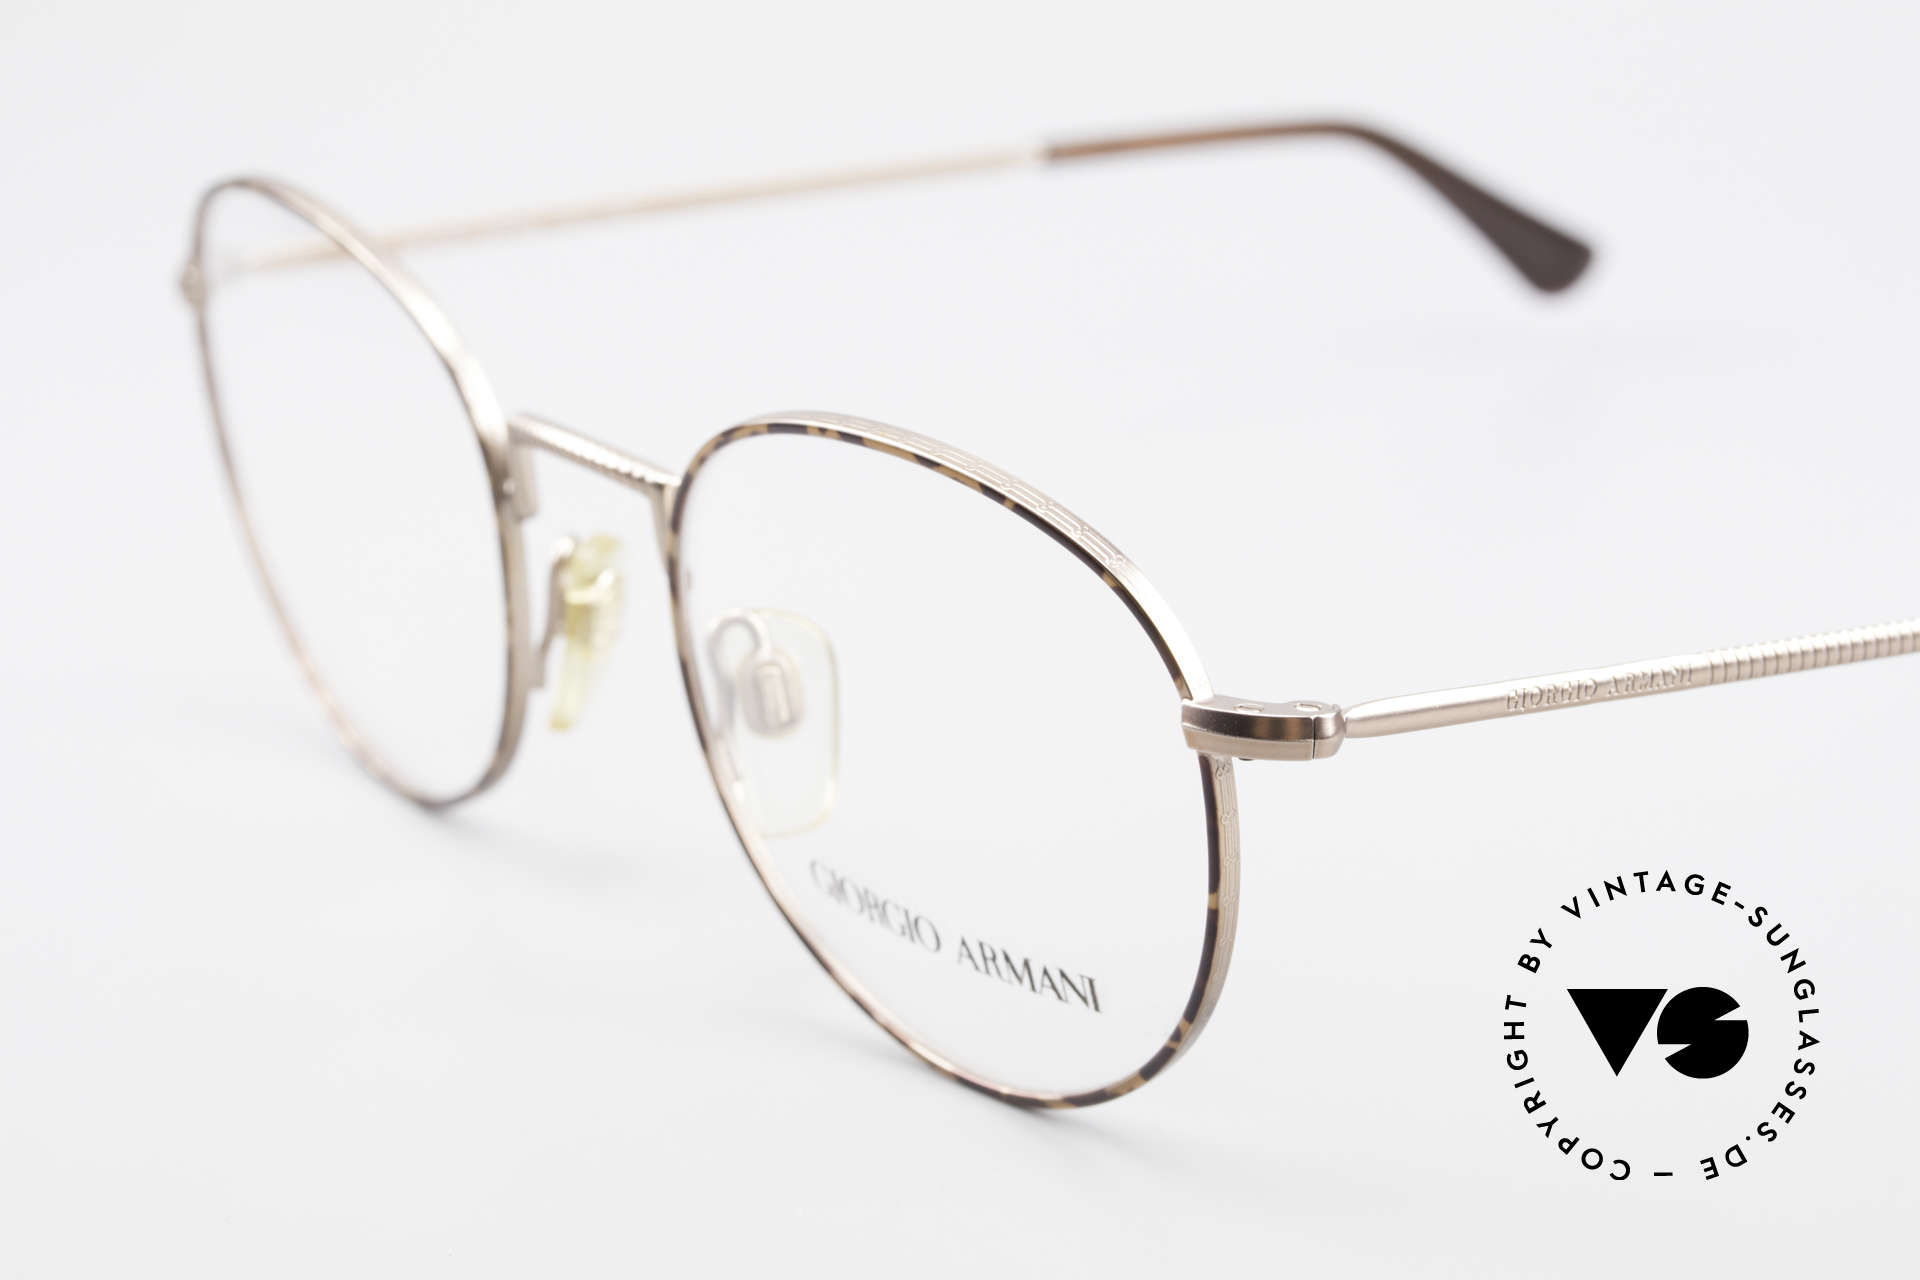 Giorgio Armani 231 80's Panto Frame No Retro, never worn (like all our rare vintage Armani glasses), Made for Men